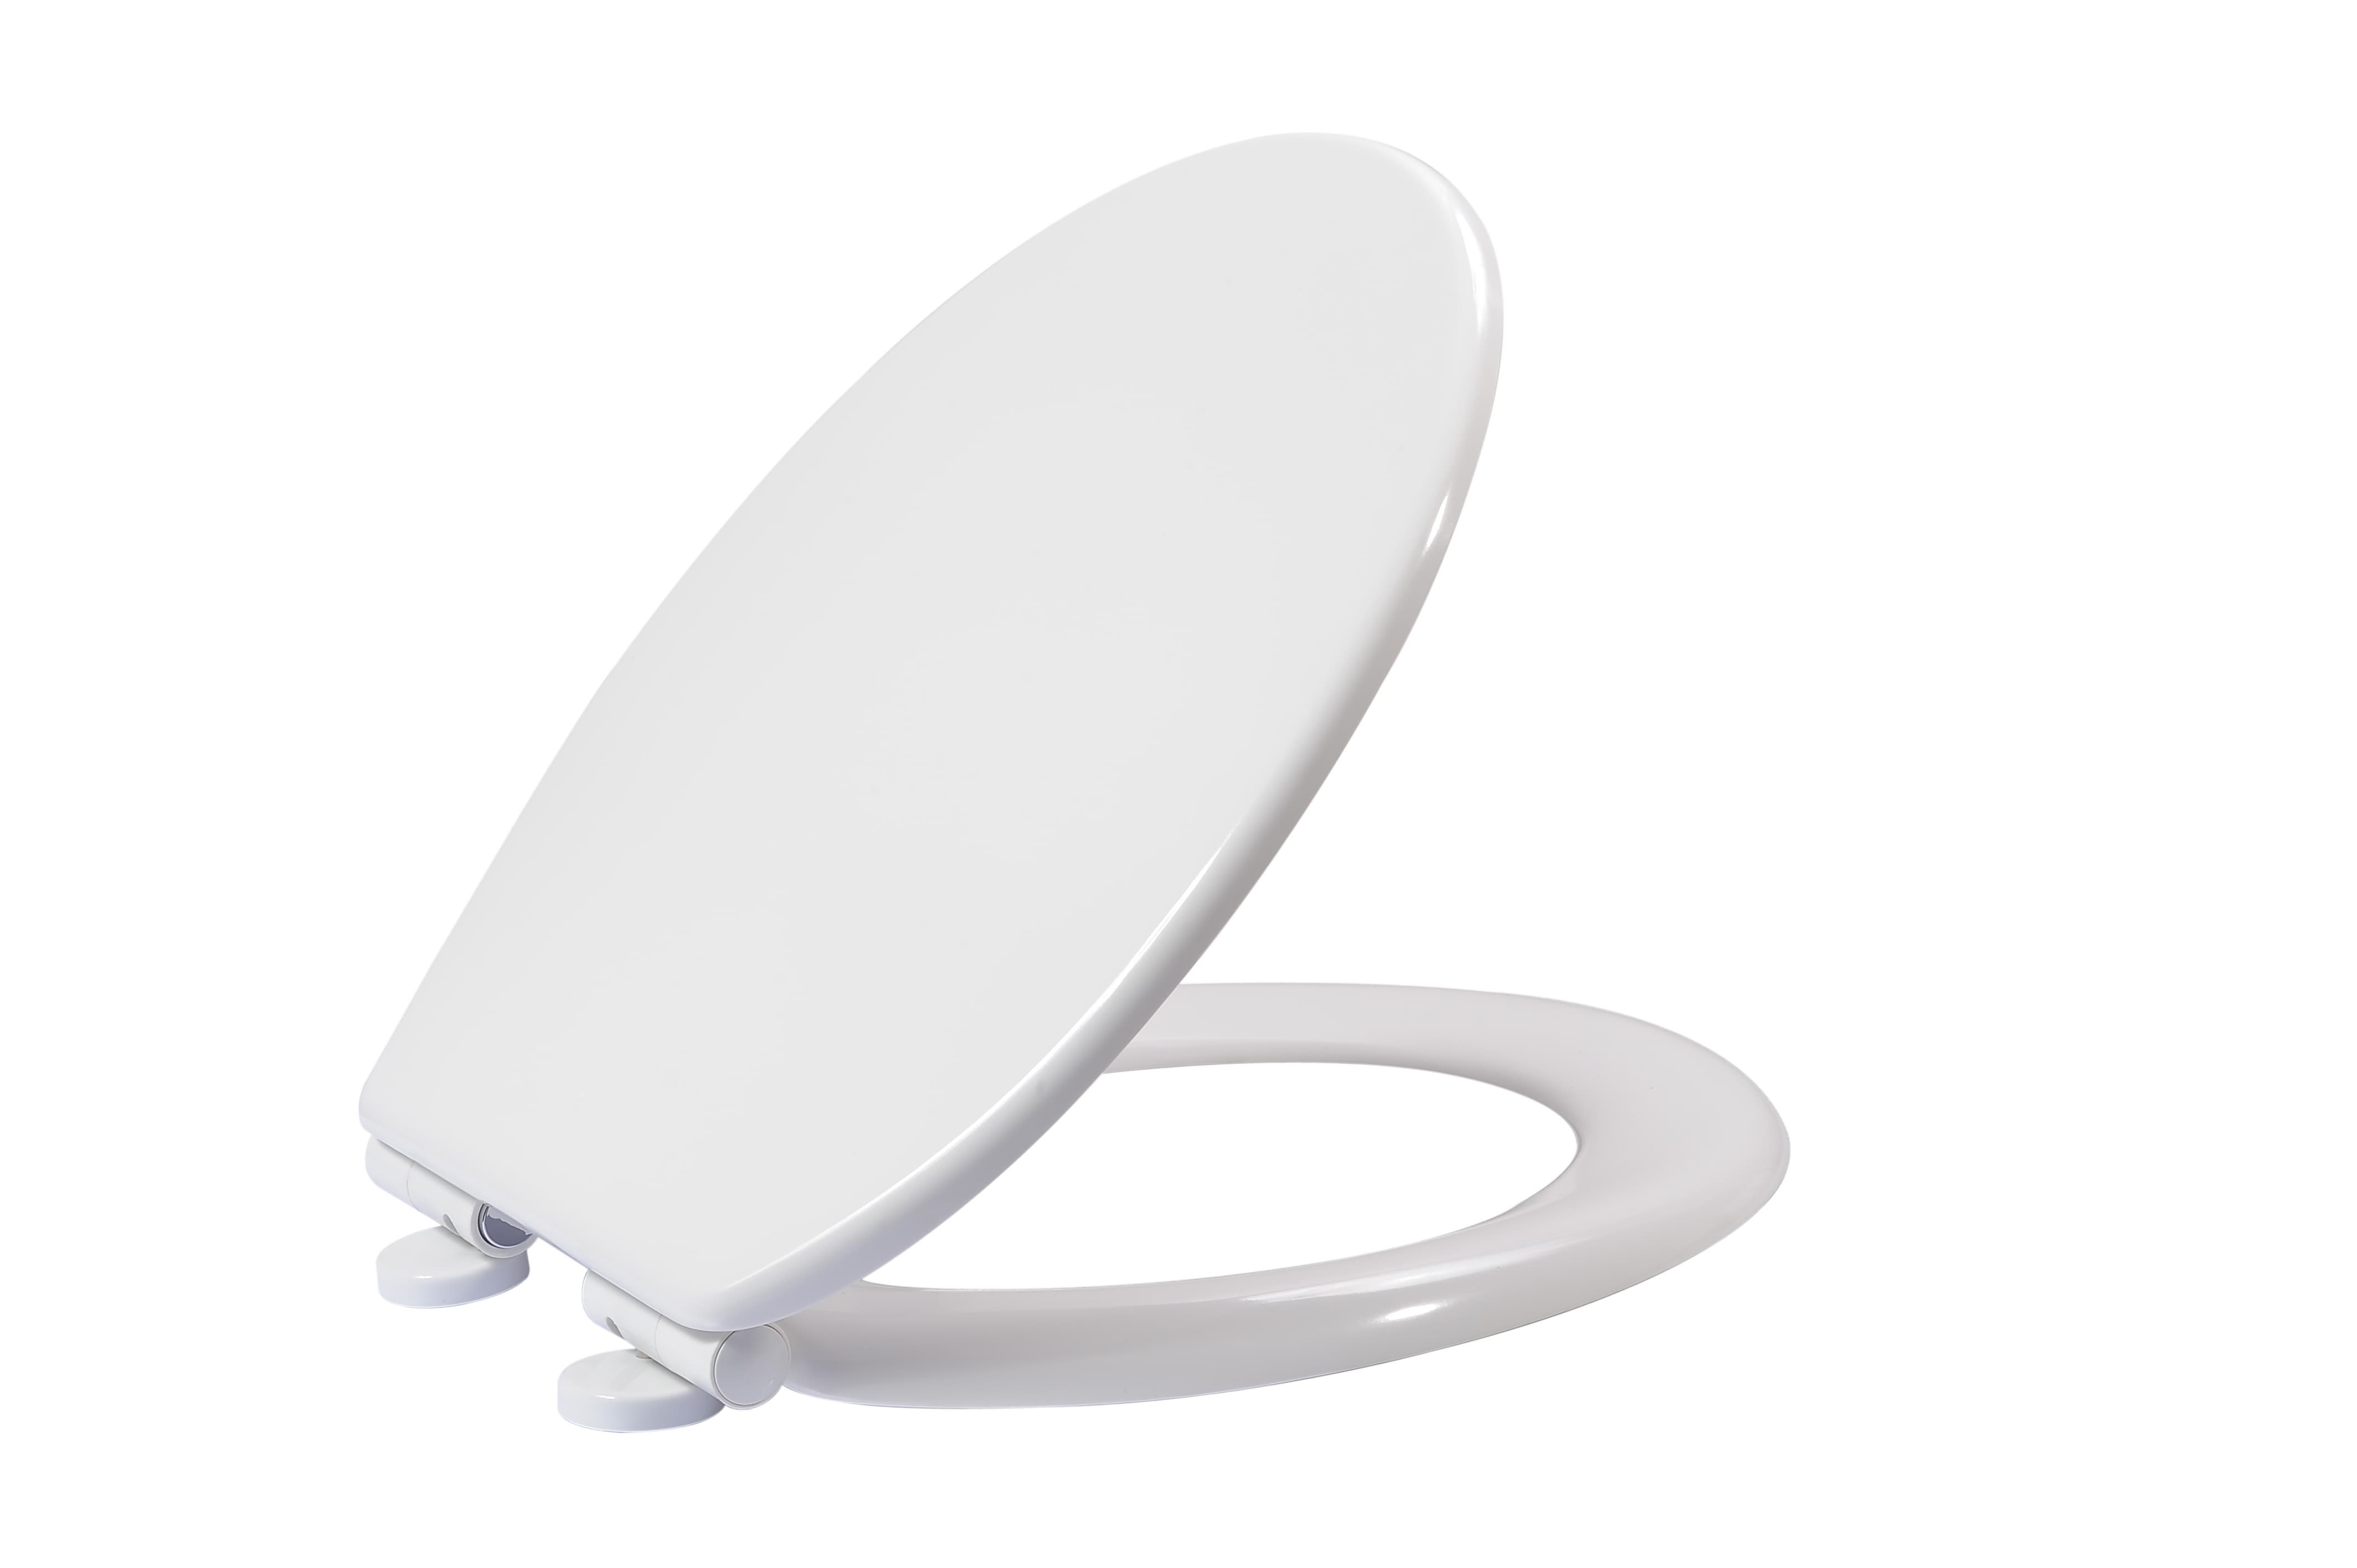 European Standard Urea Wc Toilet Seat Cover With Soft